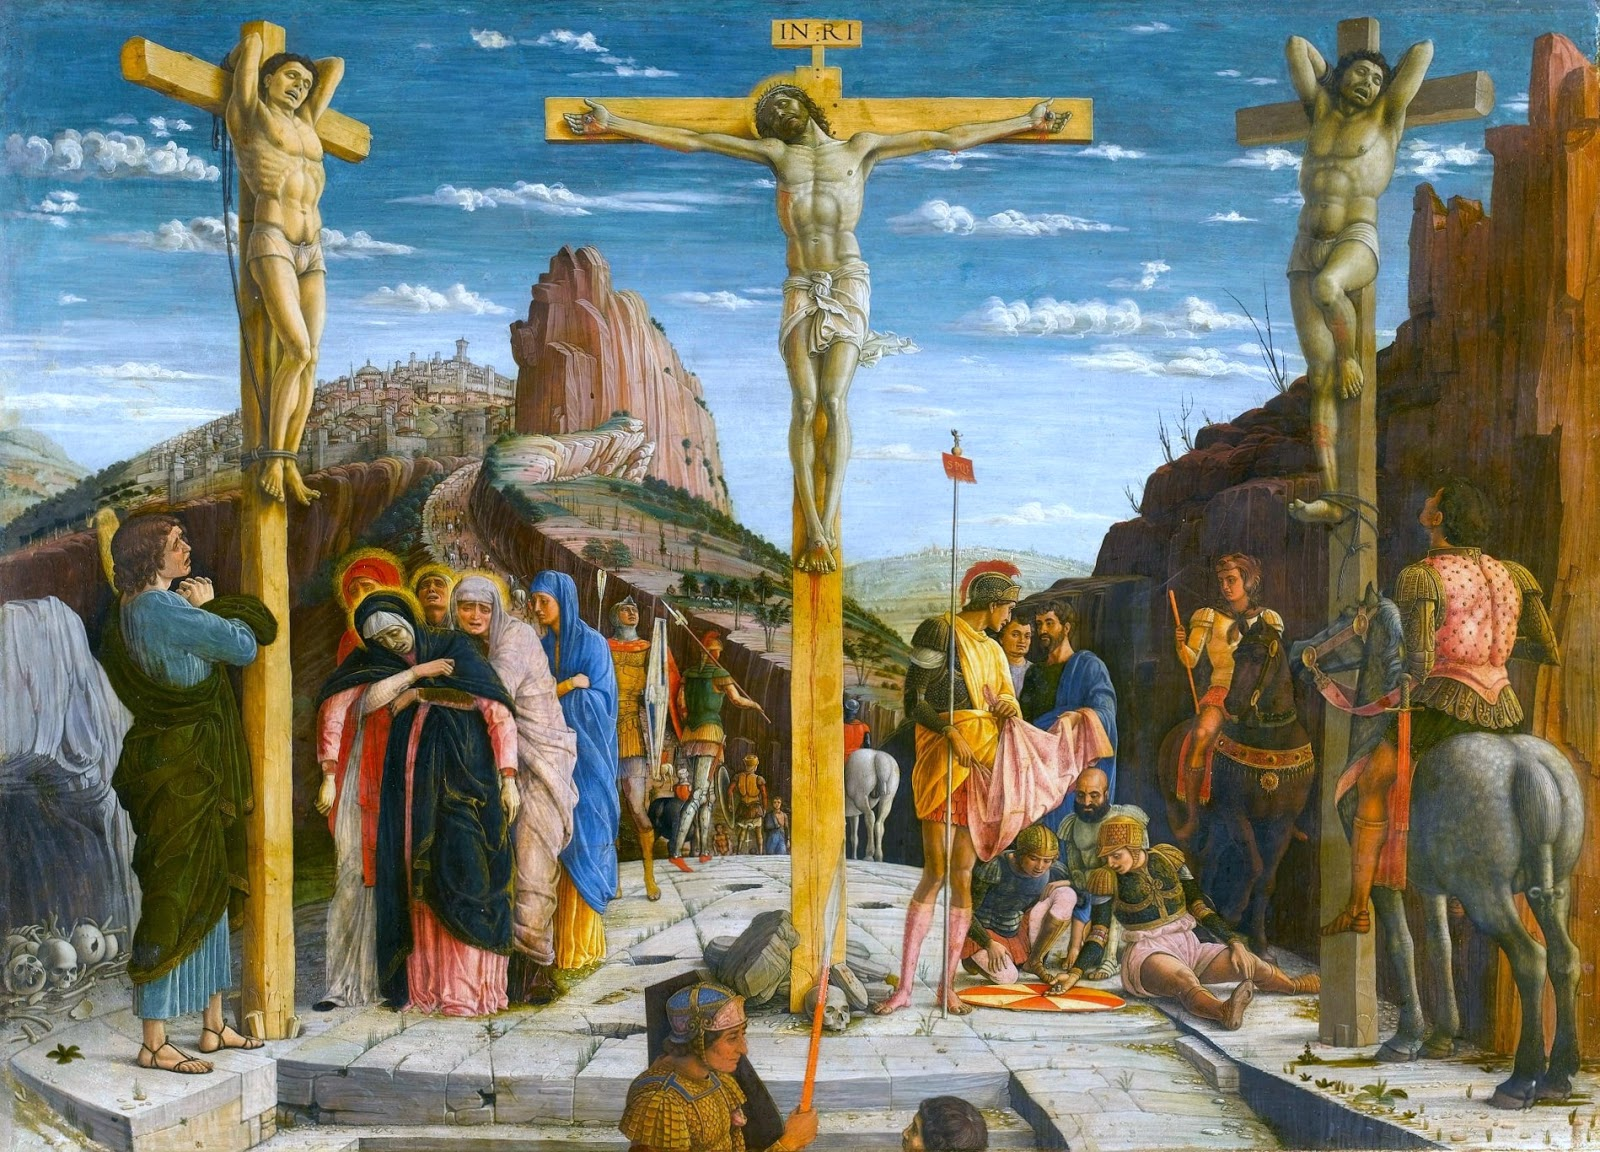 Crucifixion by Andrea Mantegna, a painting that depicts the death of Jesus Christ on a cross.